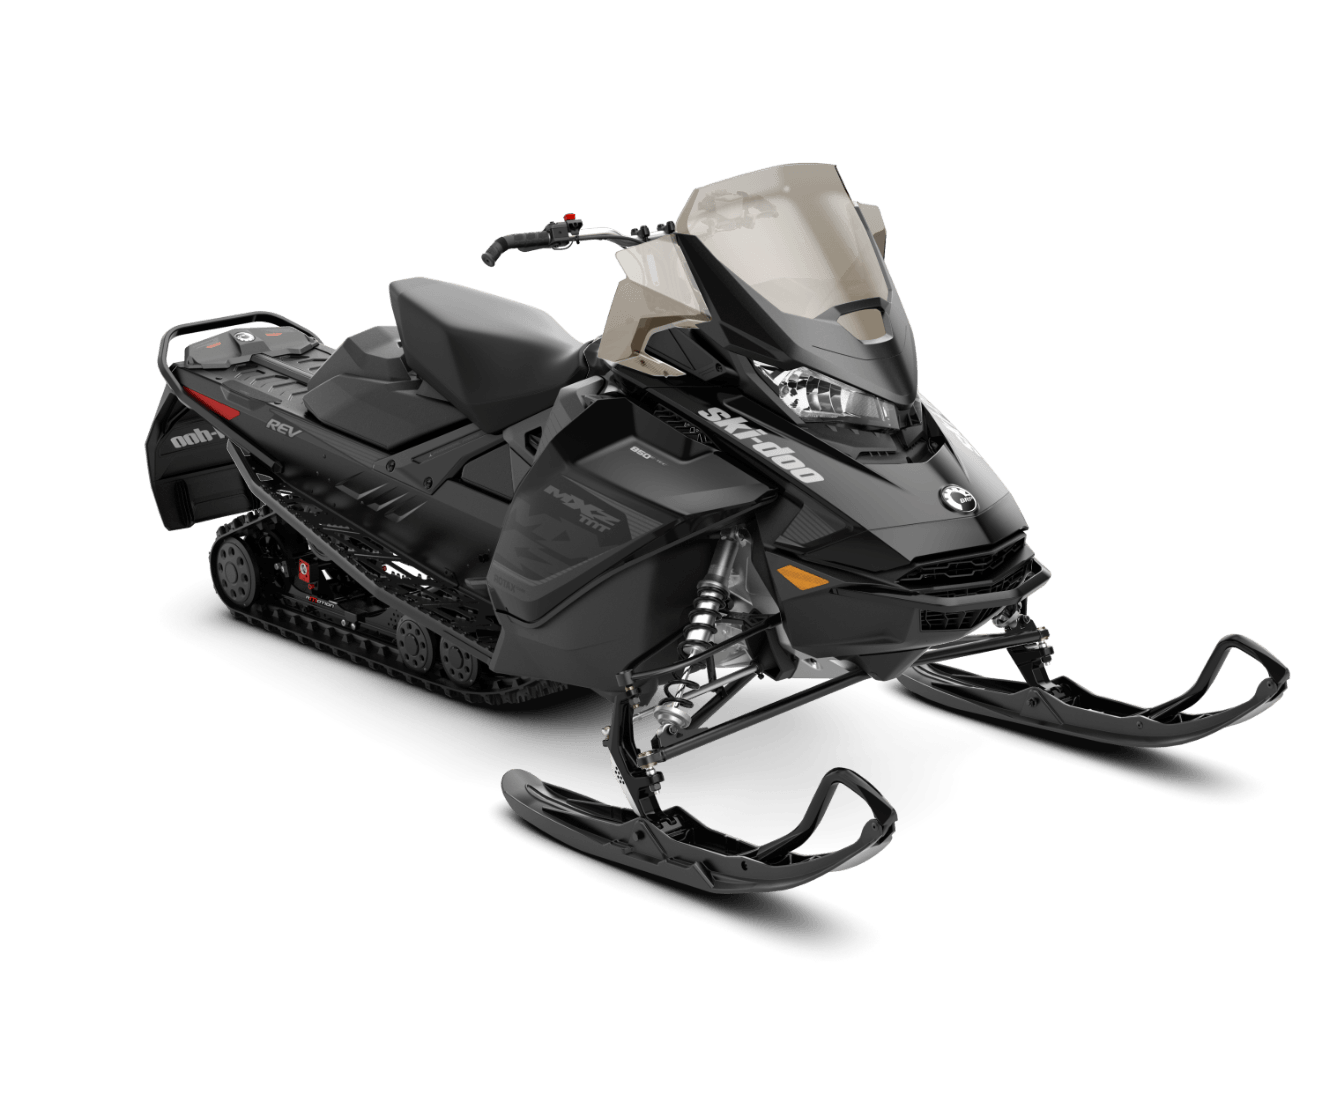 2018 Ski-Doo MXZ TNT 850 E-TEC in Honesdale, Pennsylvania